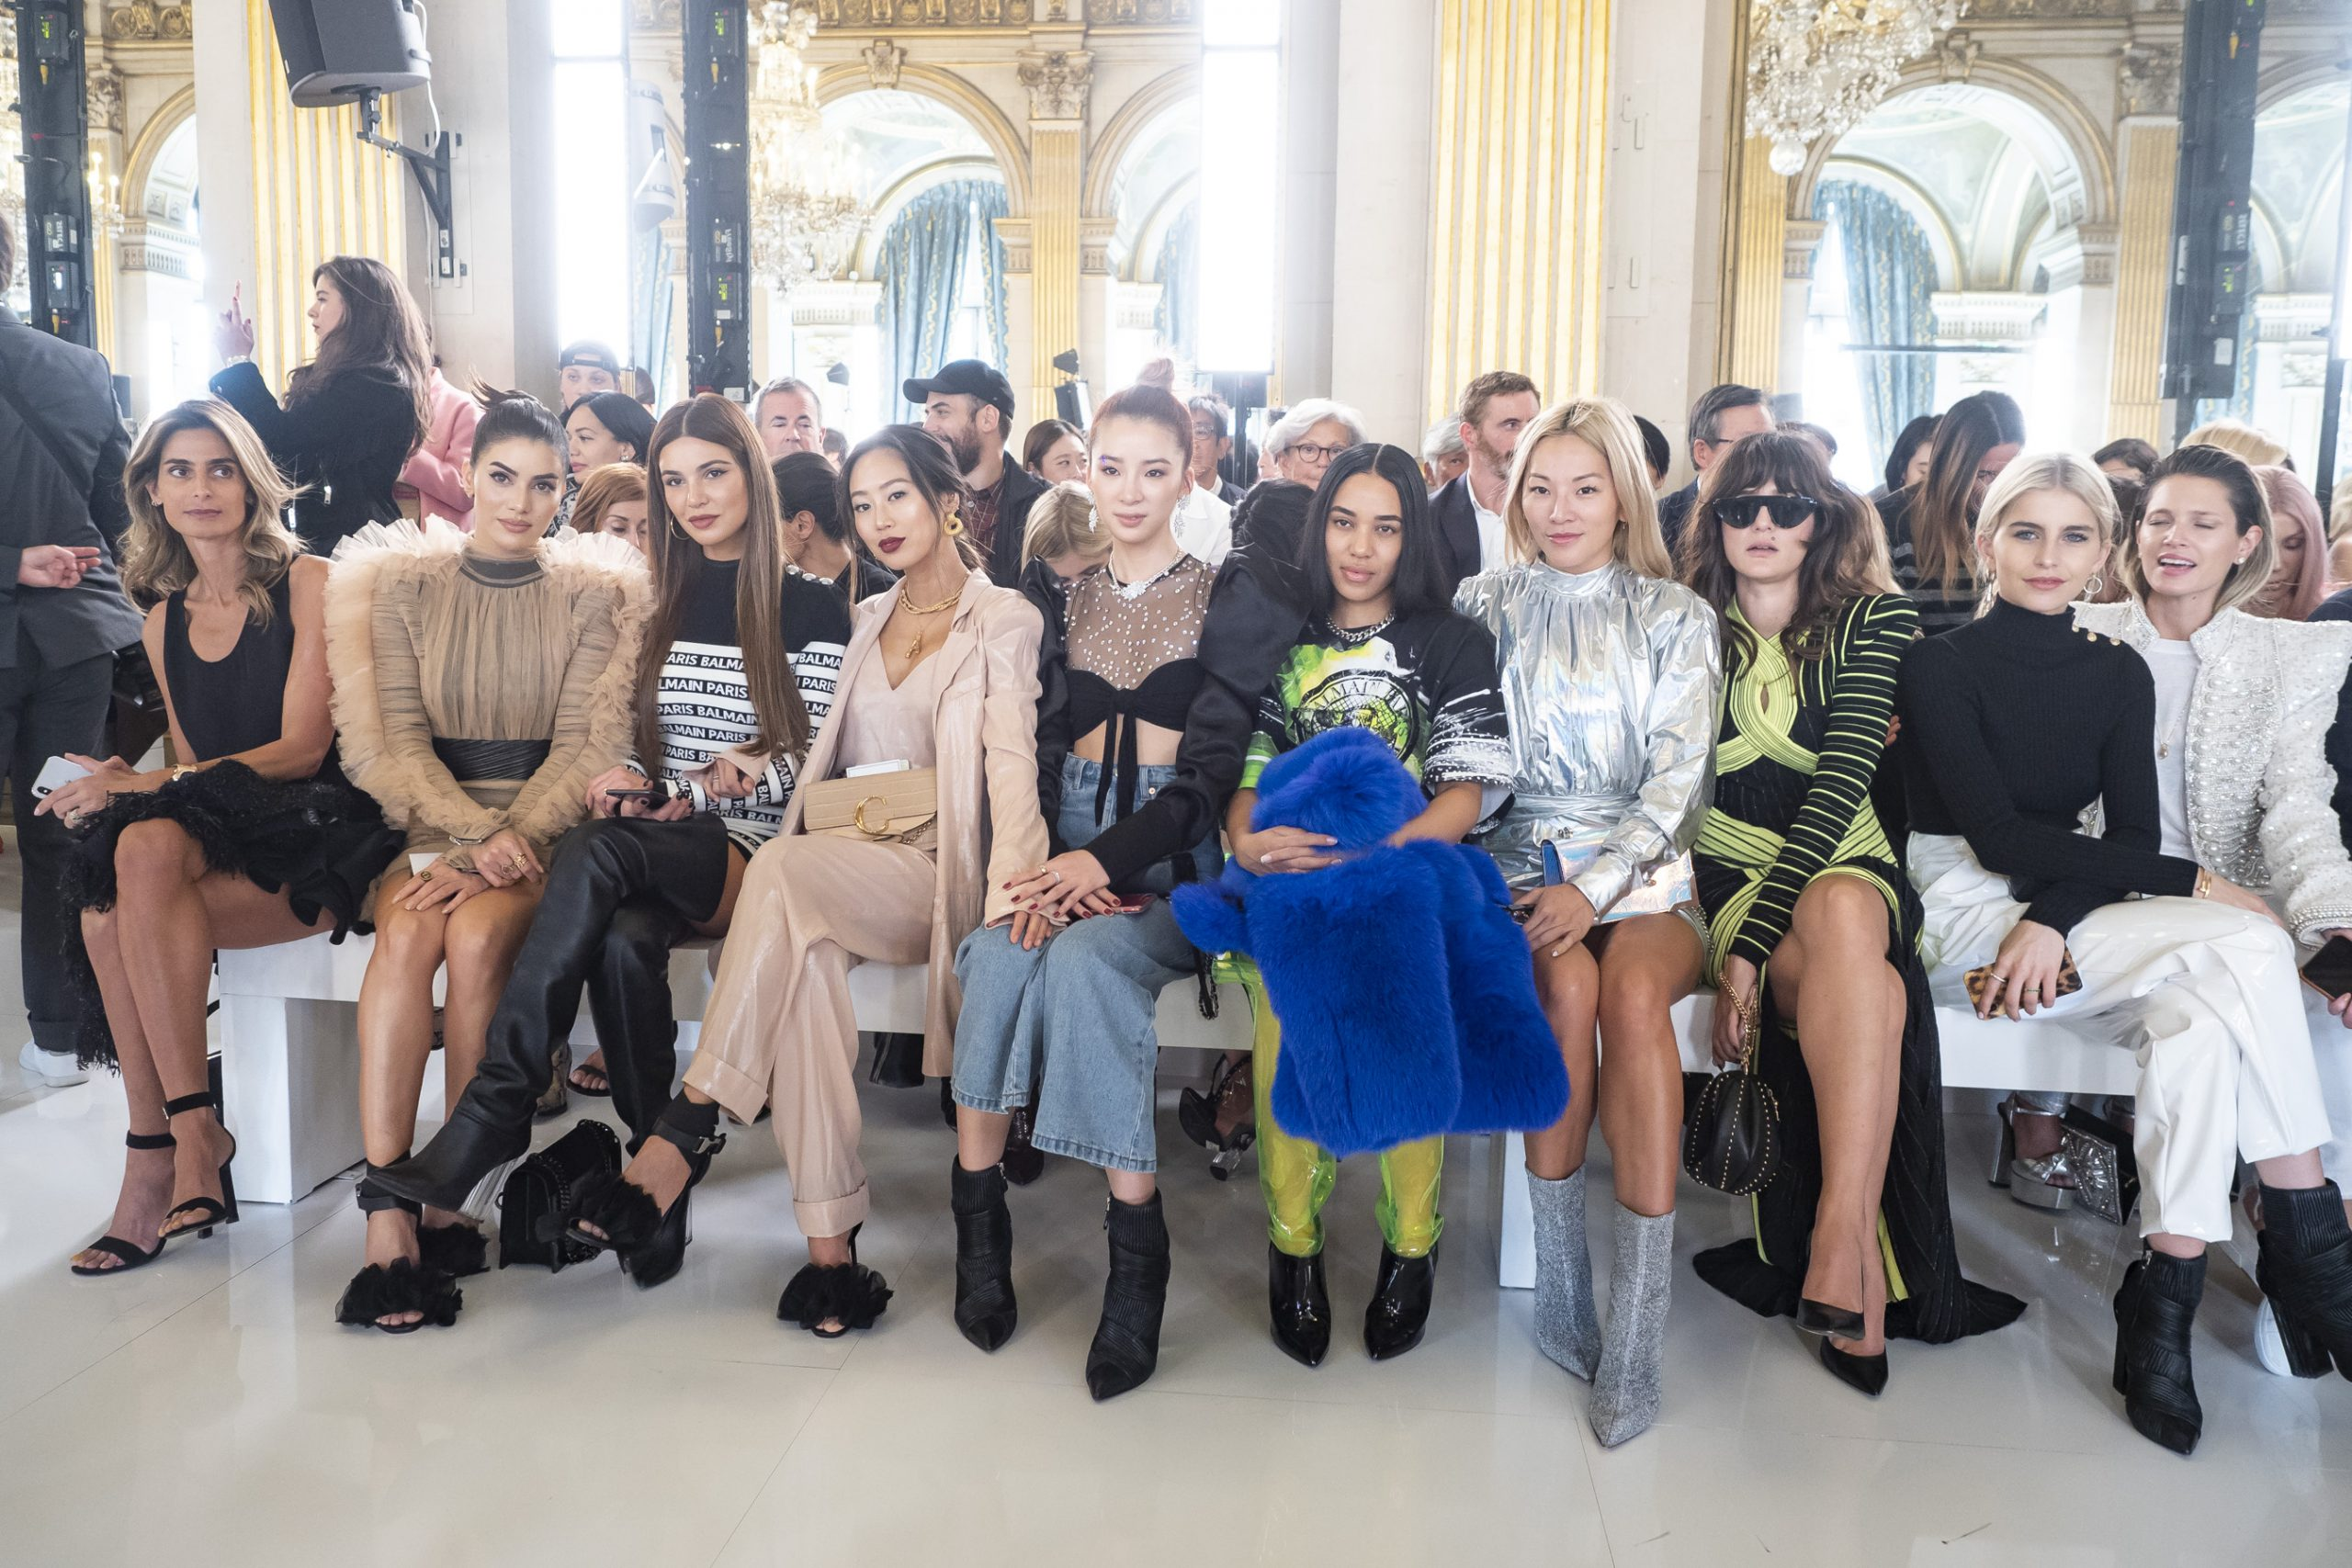 Why LFW's PhysiDigital Shows The Toxic Divide Between Haves & Have-Nots